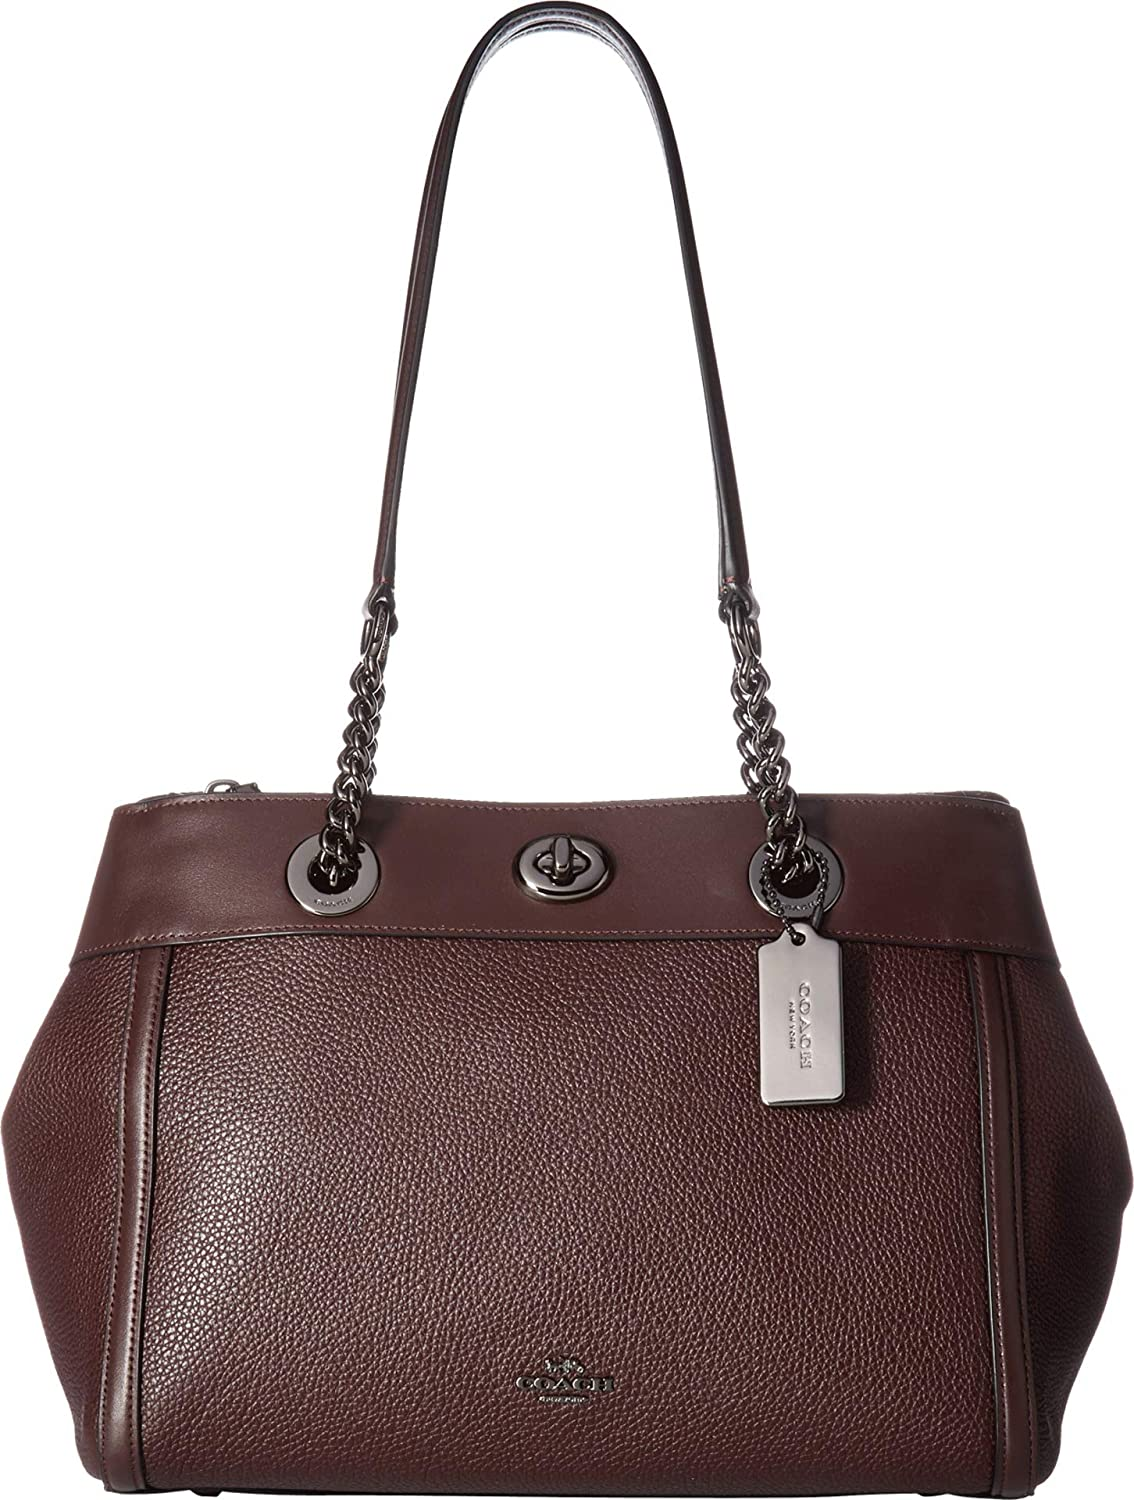 57641c63ab COACH Women s Turnlock Edie Carryall in Mixed Leather Dark Oxblood One  Size  Handbags  Amazon.com